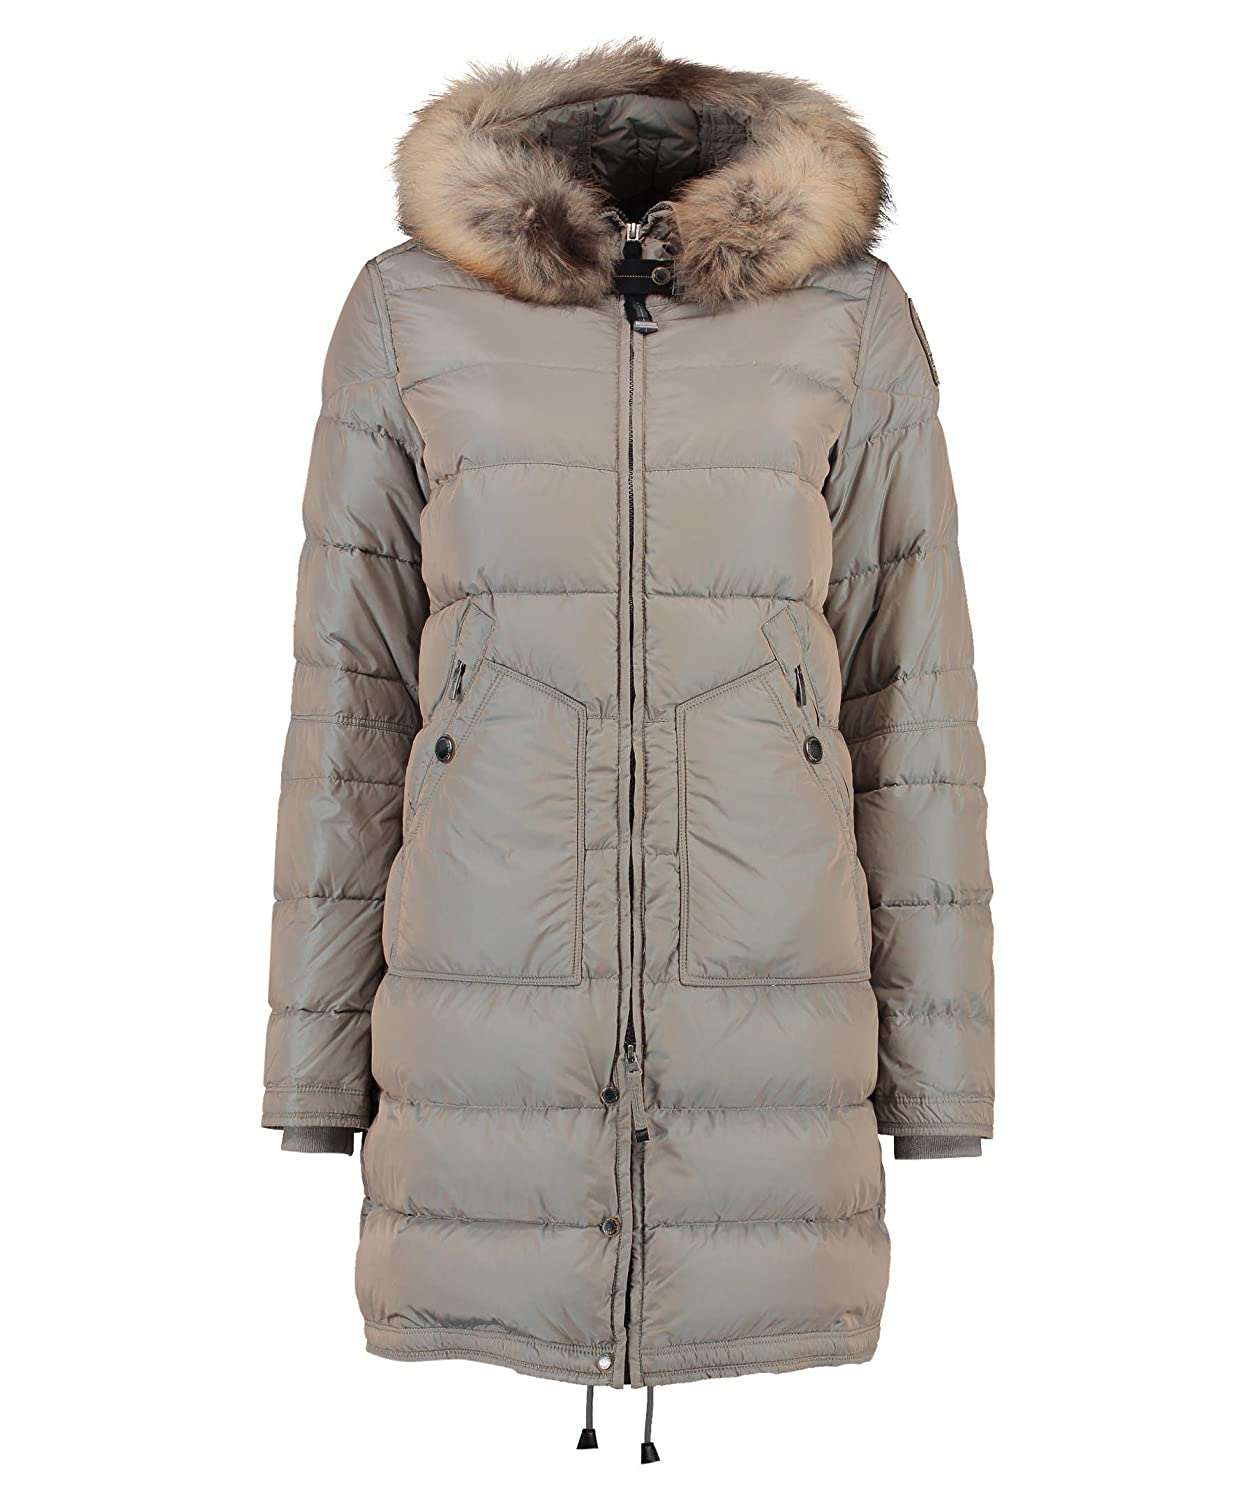 Parajumpers Damen Daunenjacke Light Long Bear taupe XS